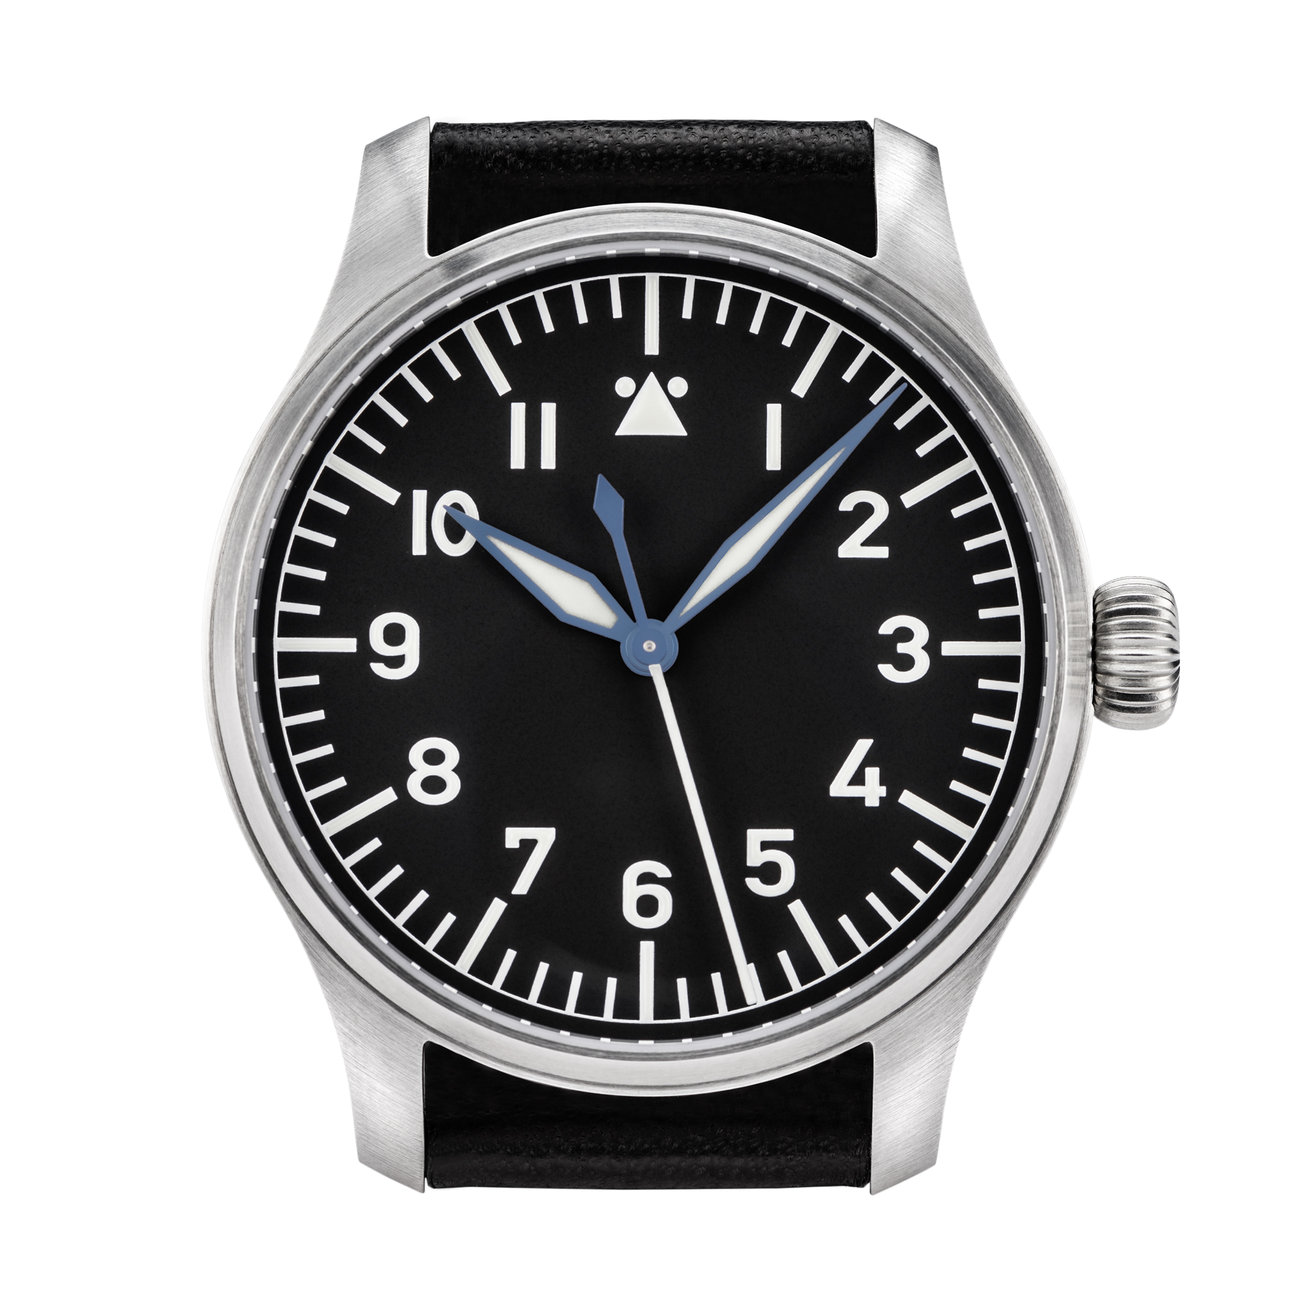 Here's Everything You Need to Know About Flieger Watches